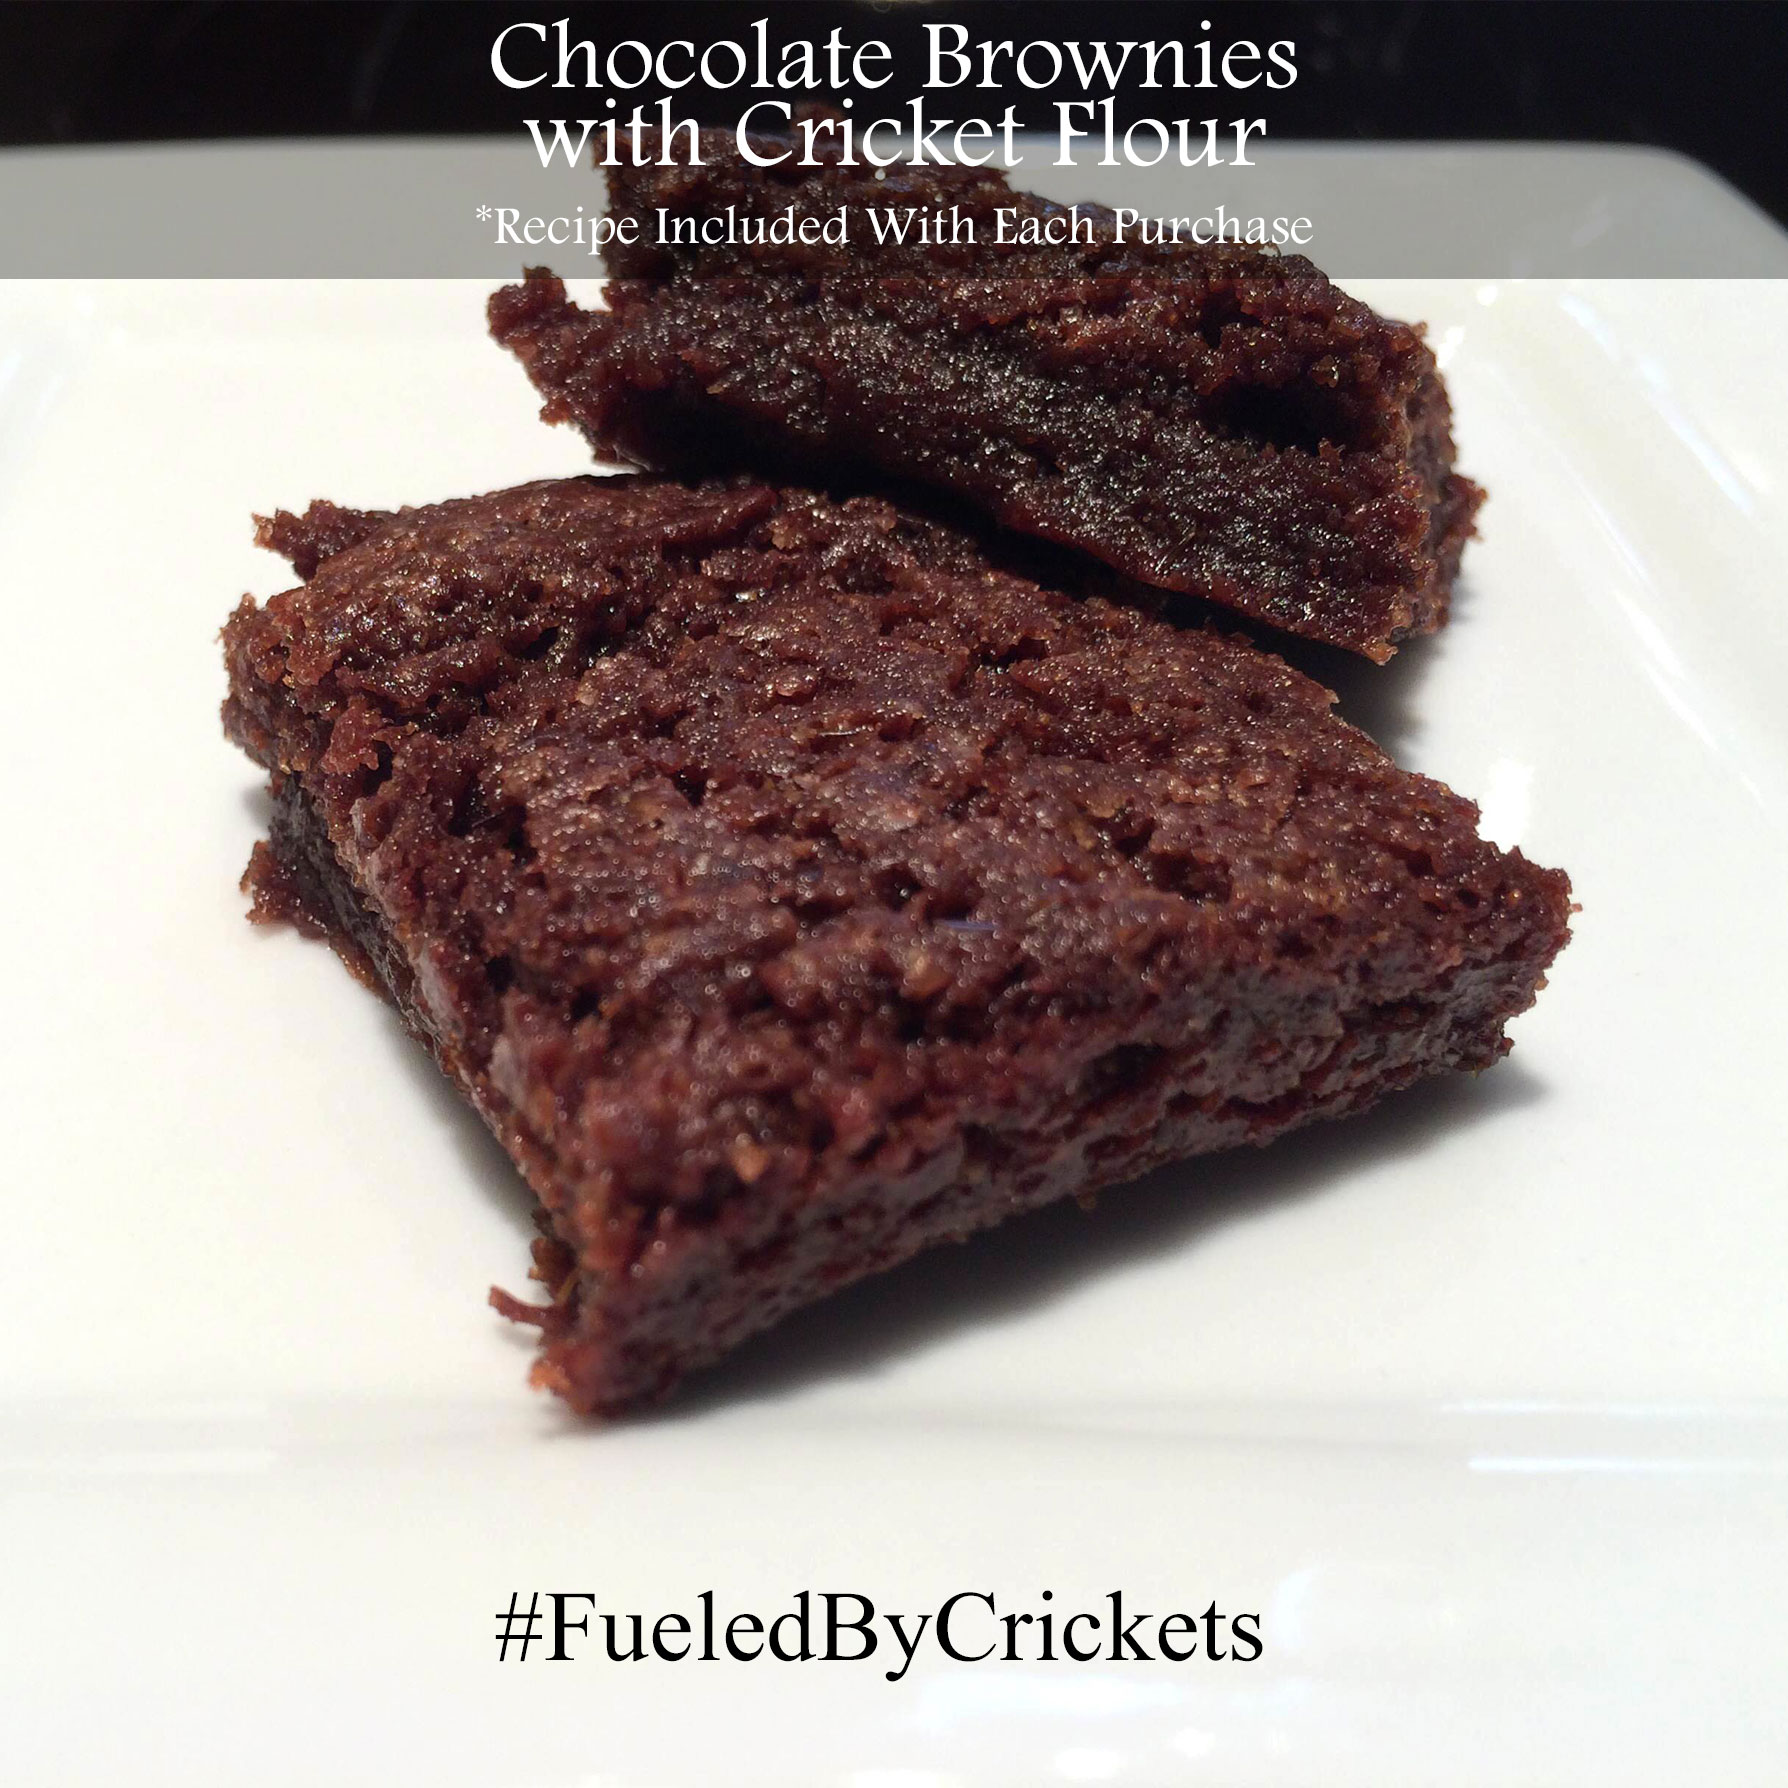 Brownies with Cricket Flour